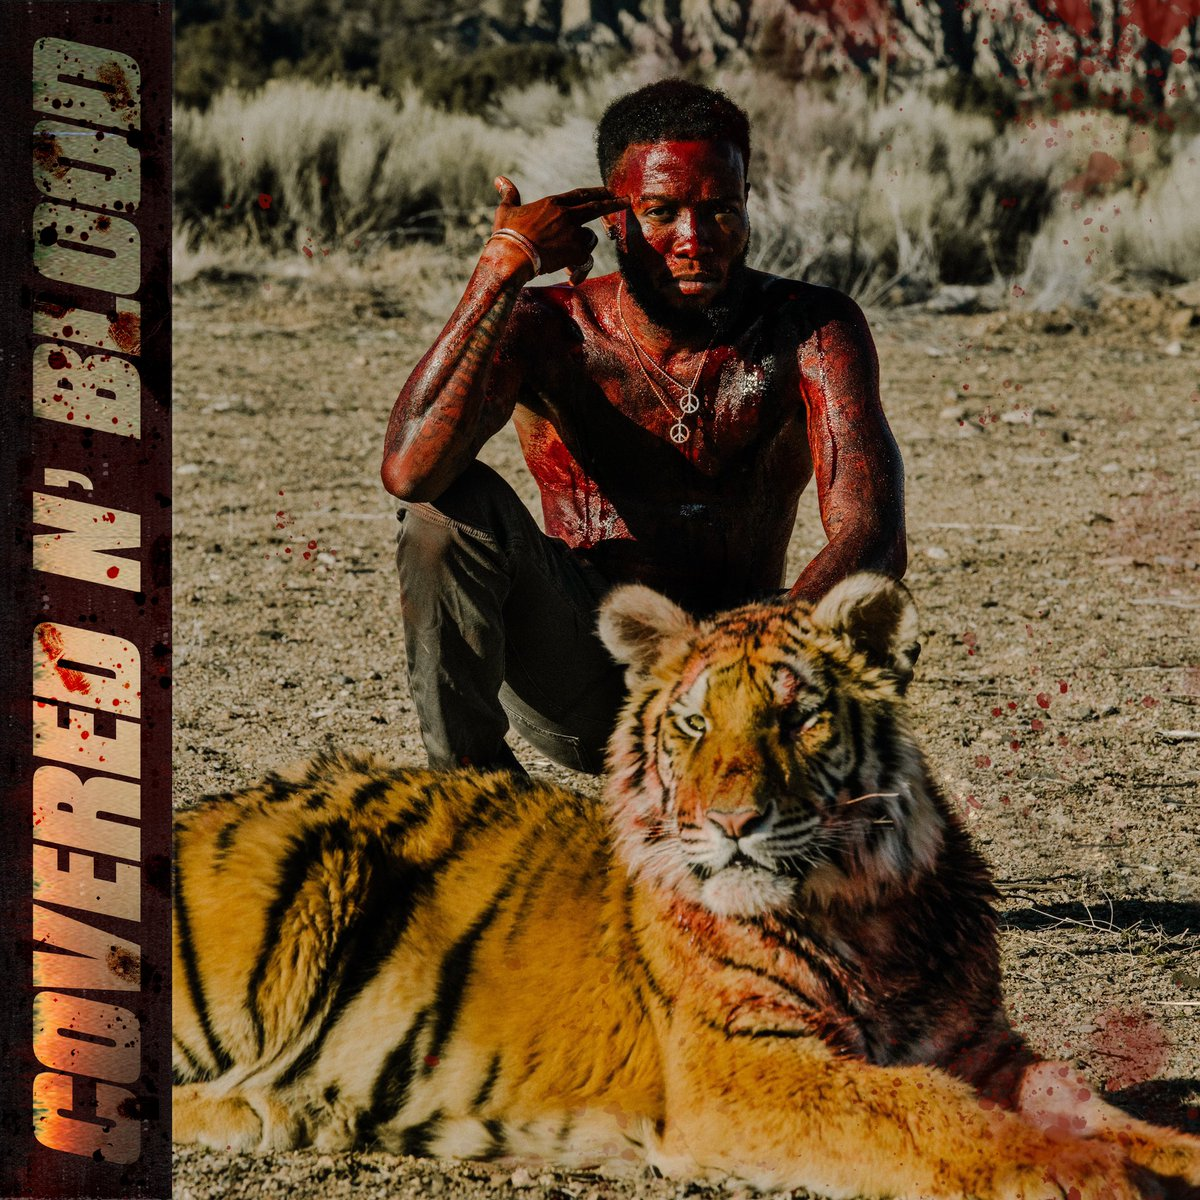 Shy Glizzy Announces New Album, 'Covered N' Blood'